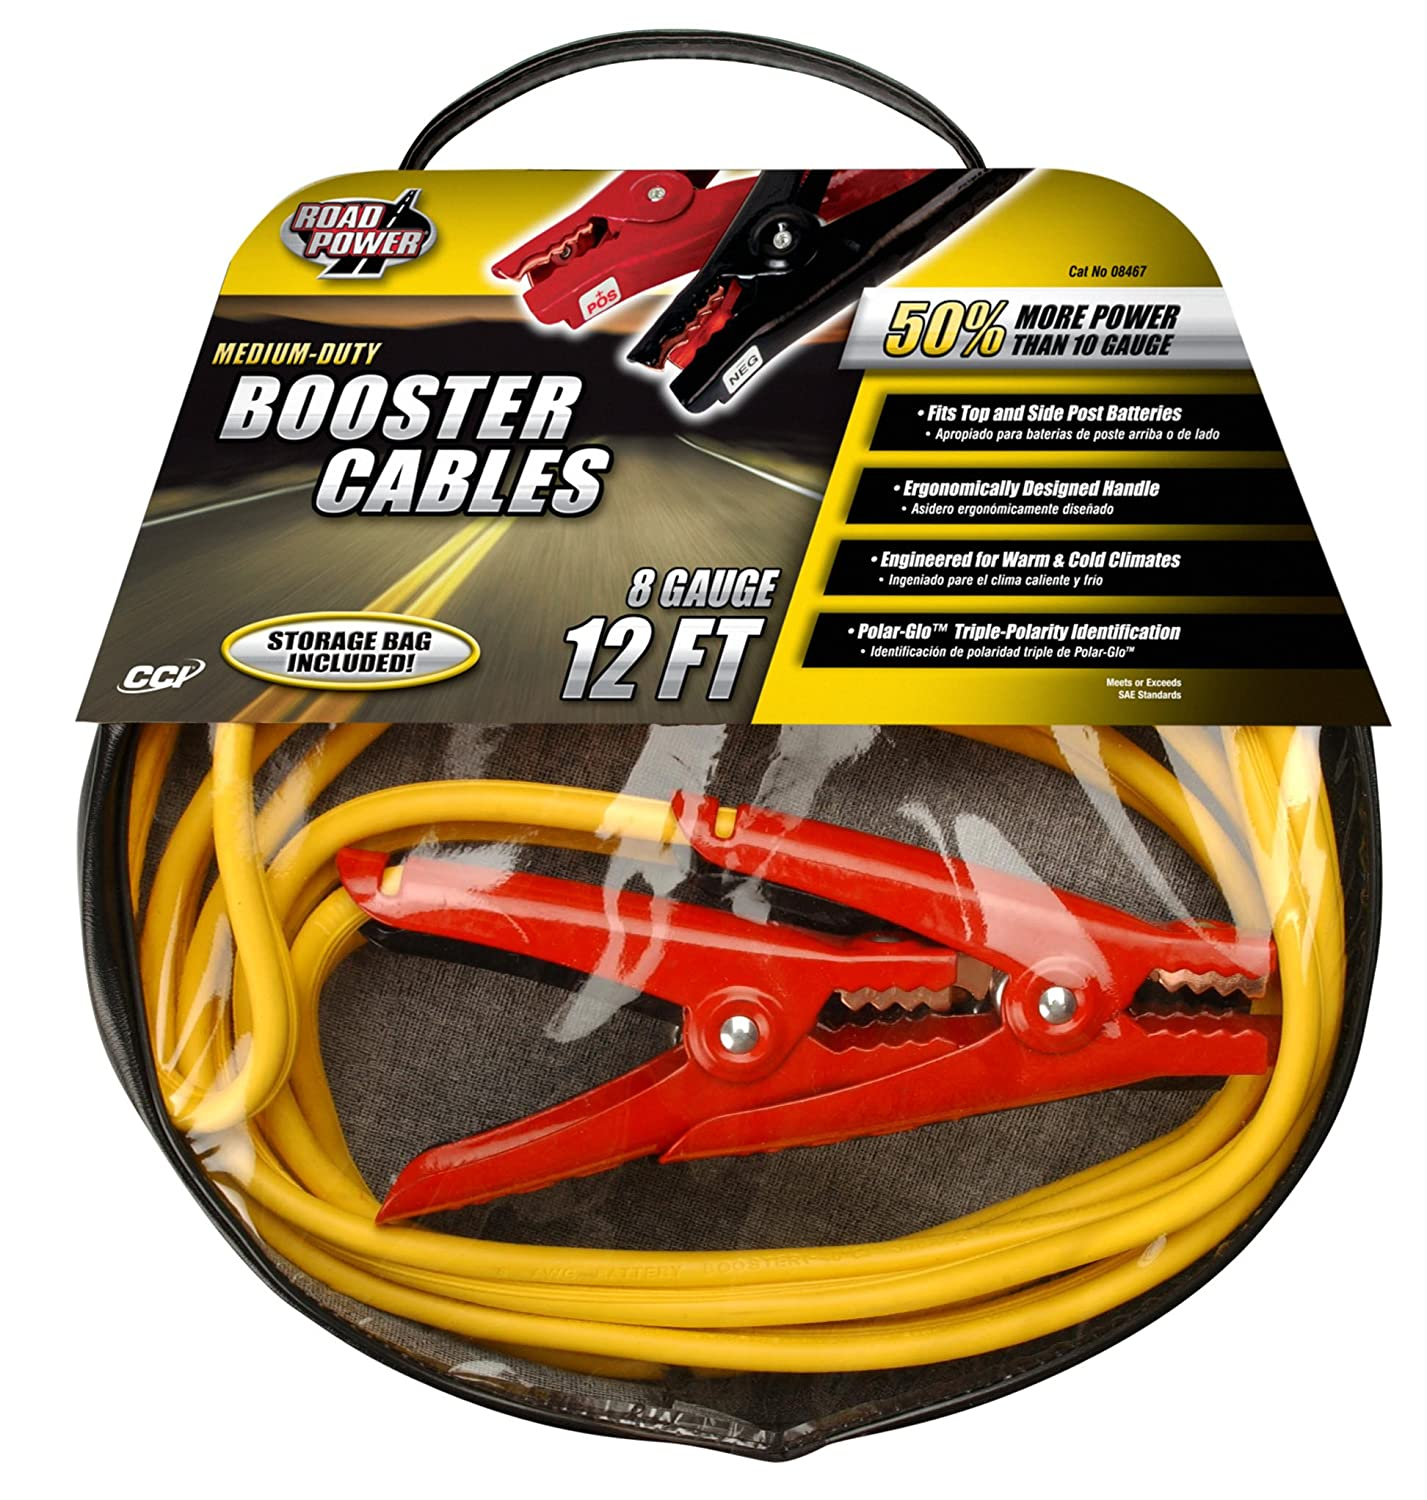 Coleman Cable 08467 12-Foot Medium-Duty Booster Cables with Bag